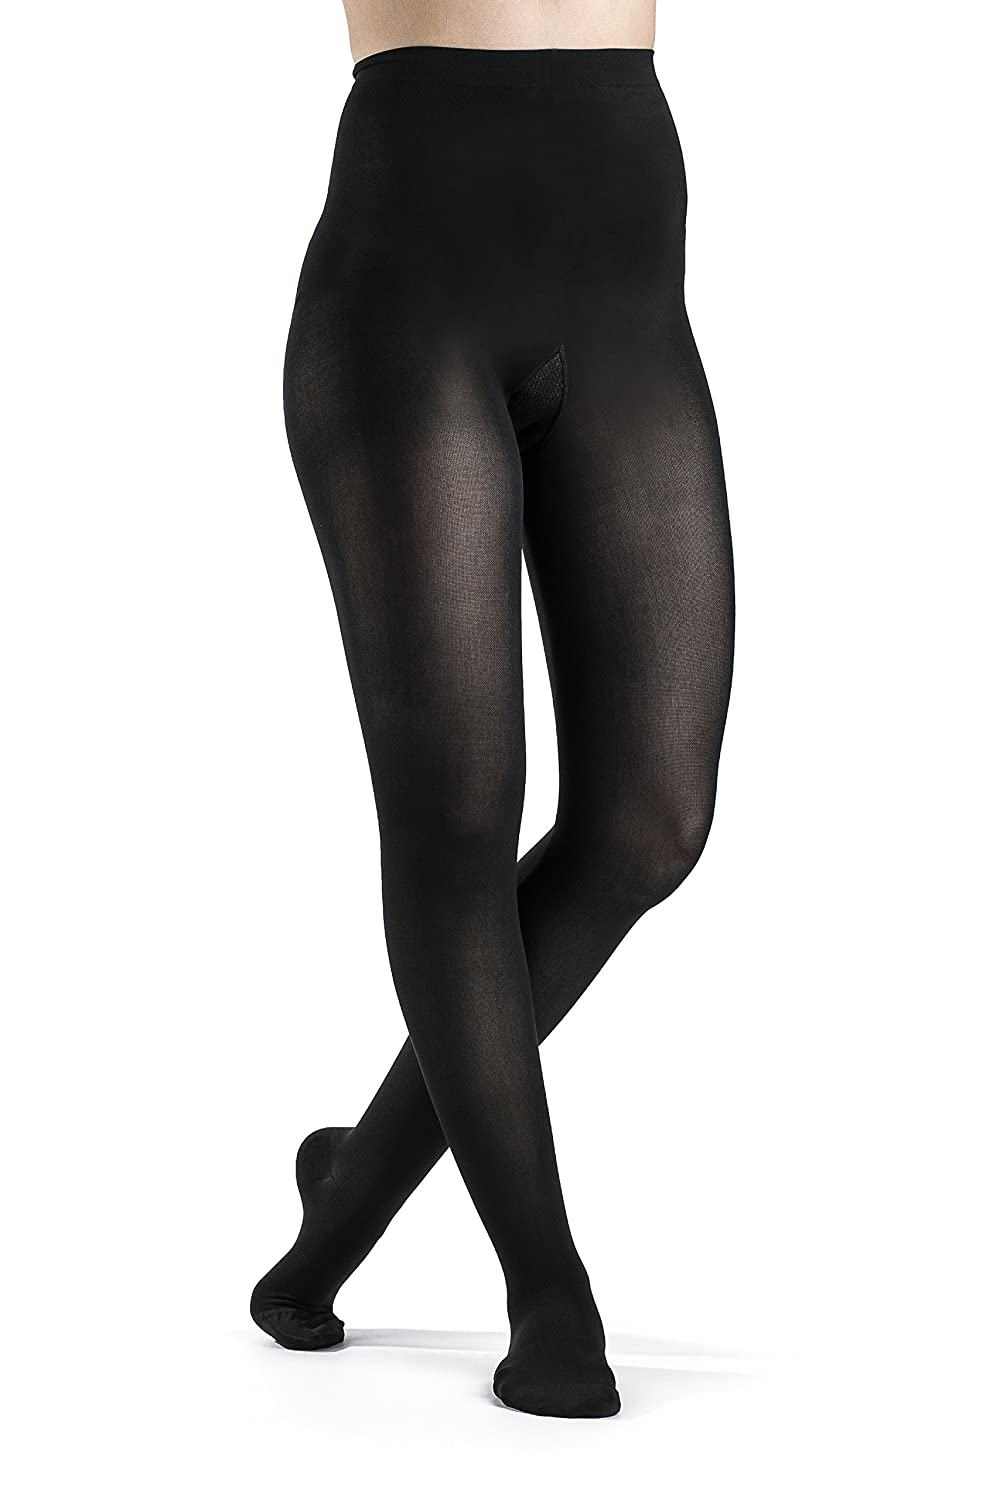 Sigvaris 841P Soft Opaque 15-20 mmHg Closed Toe Pantyhose Size: Small Short (SS), Color: Black 99 by Sigvaris B004K5MNHO